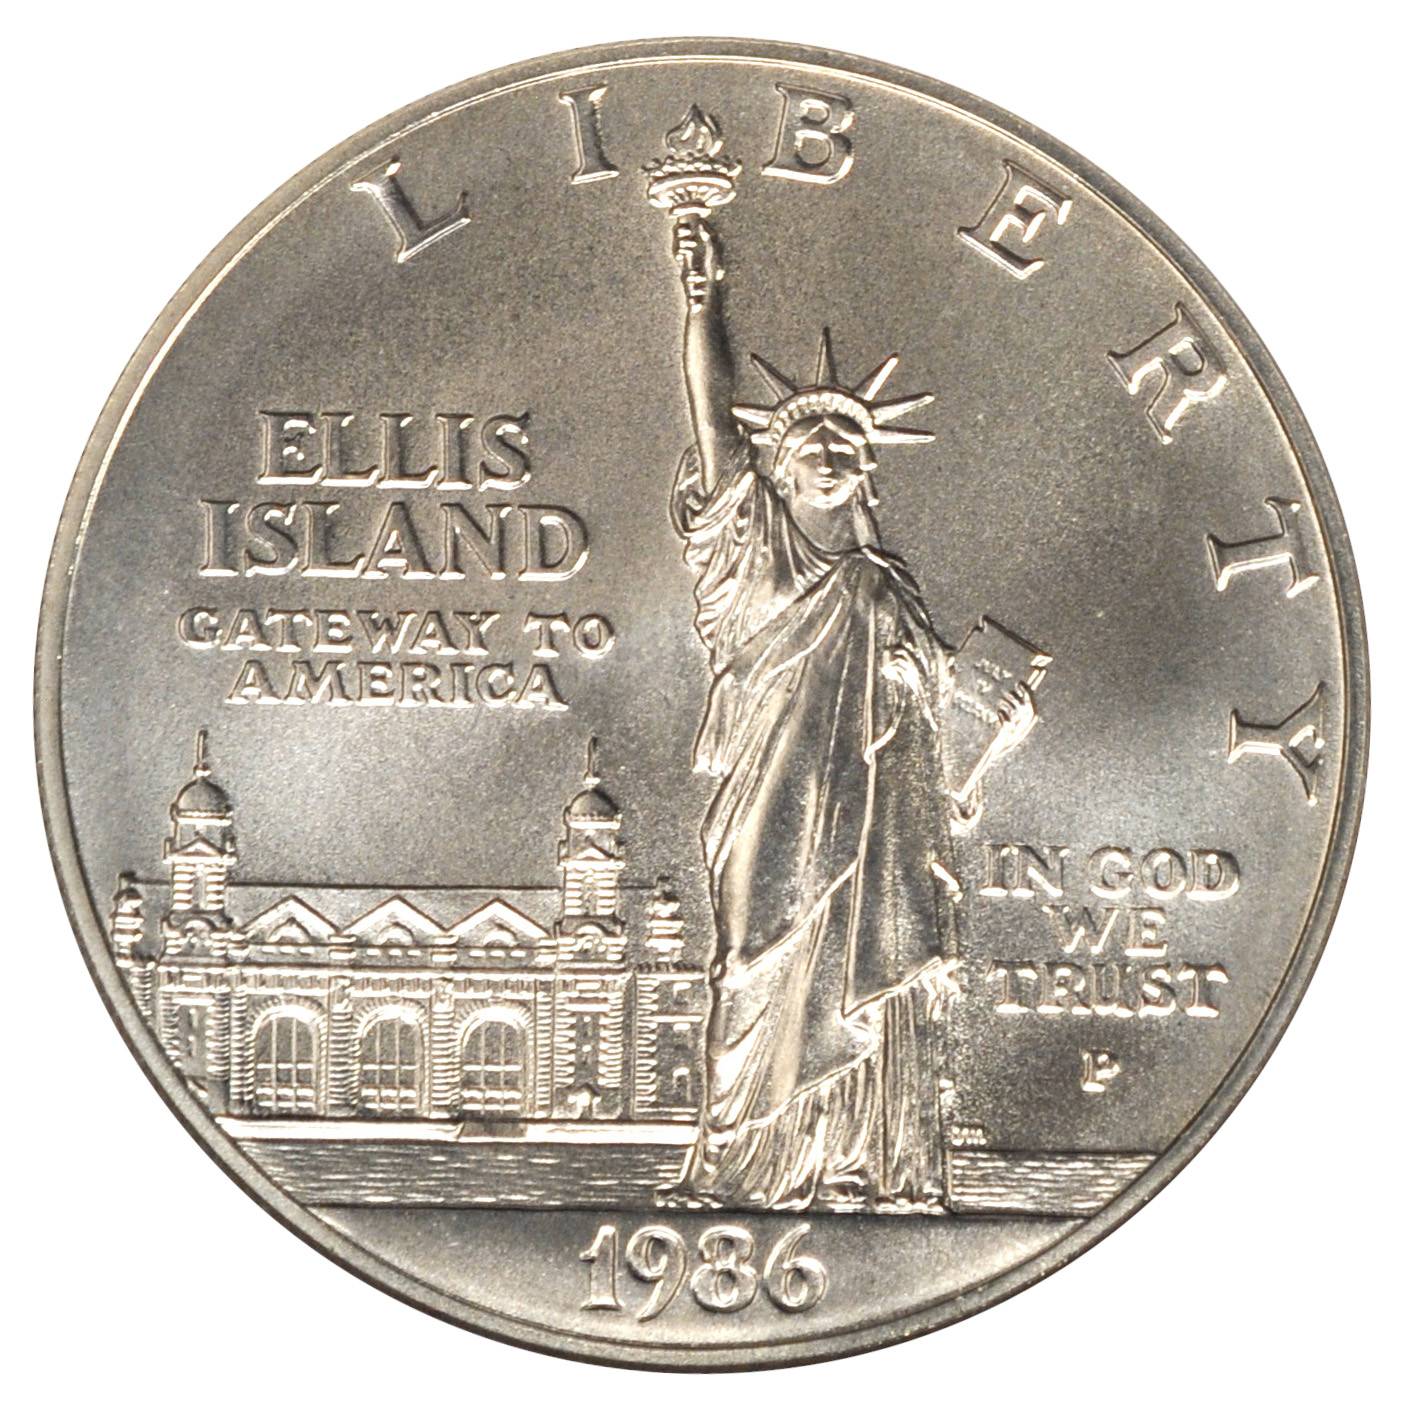 1986 1 Statue Of Liberty Silver Coin